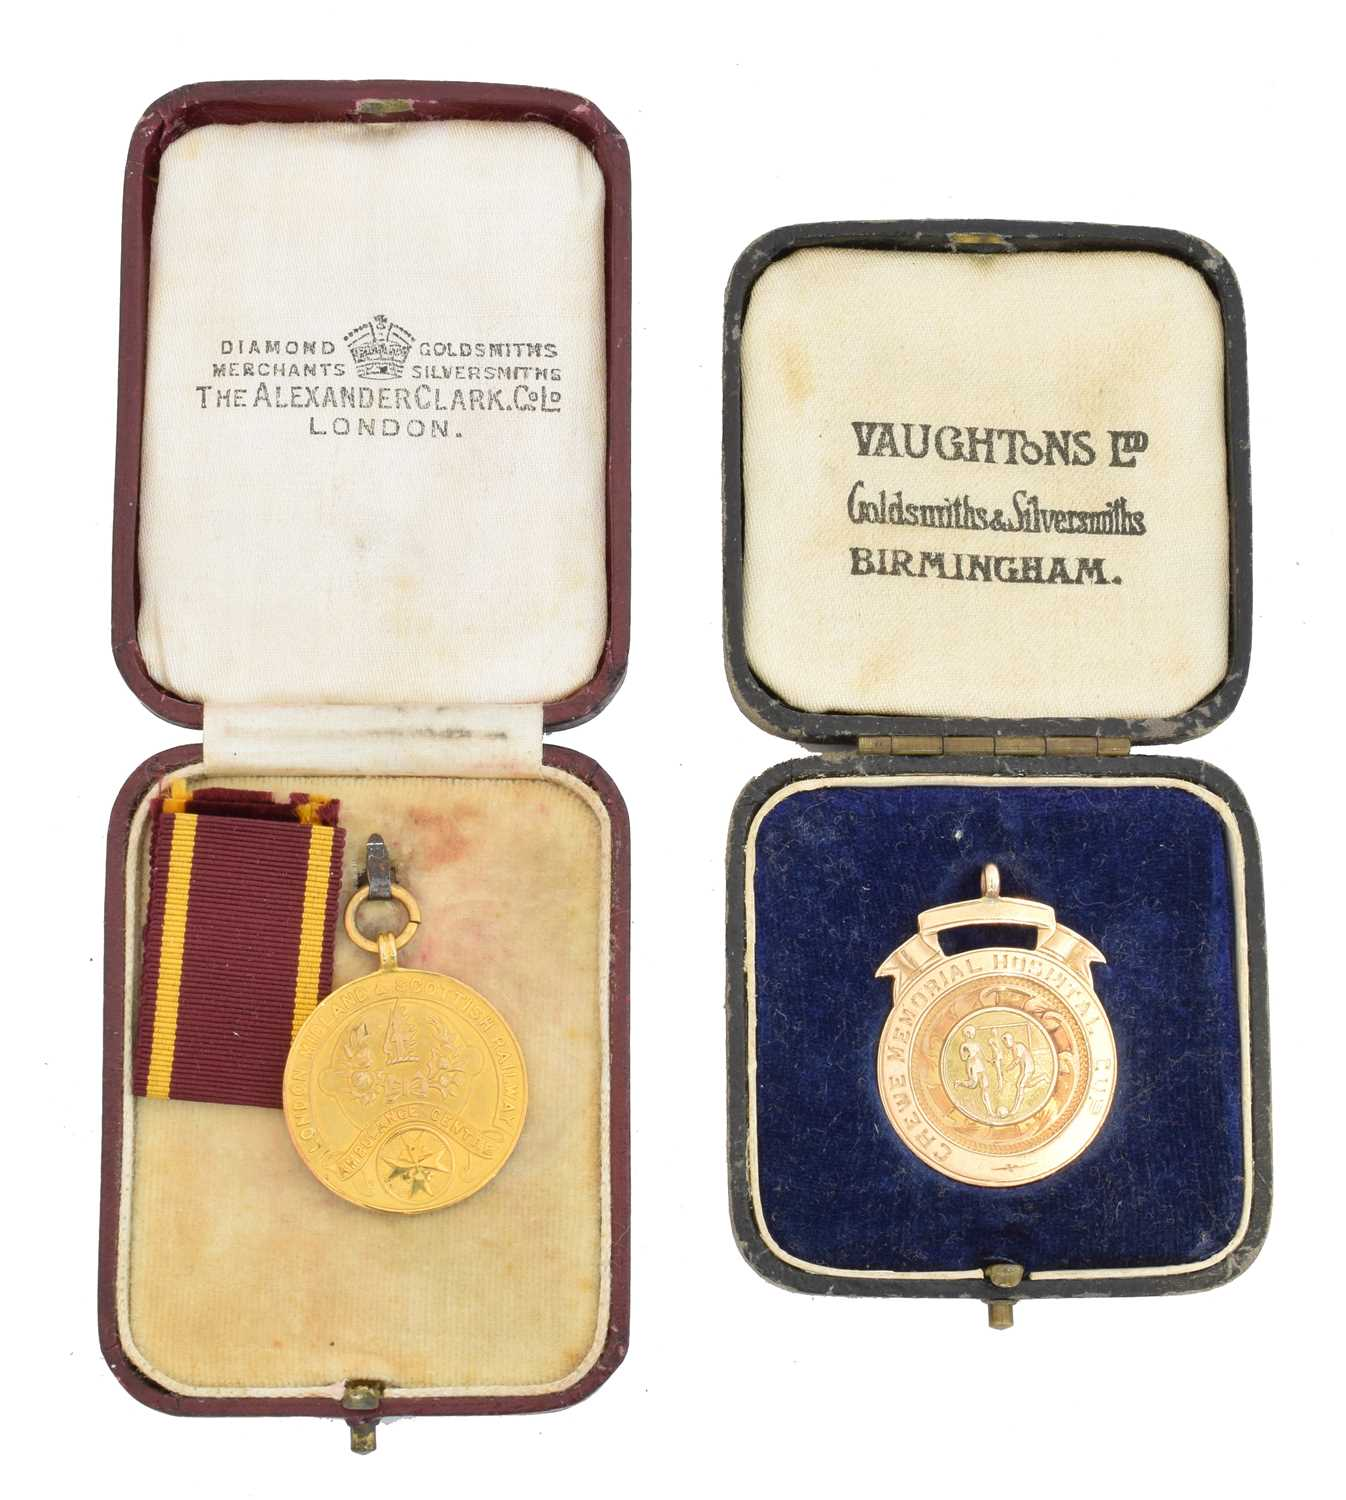 Lot 32 - Two early 20th century 9ct gold medallions